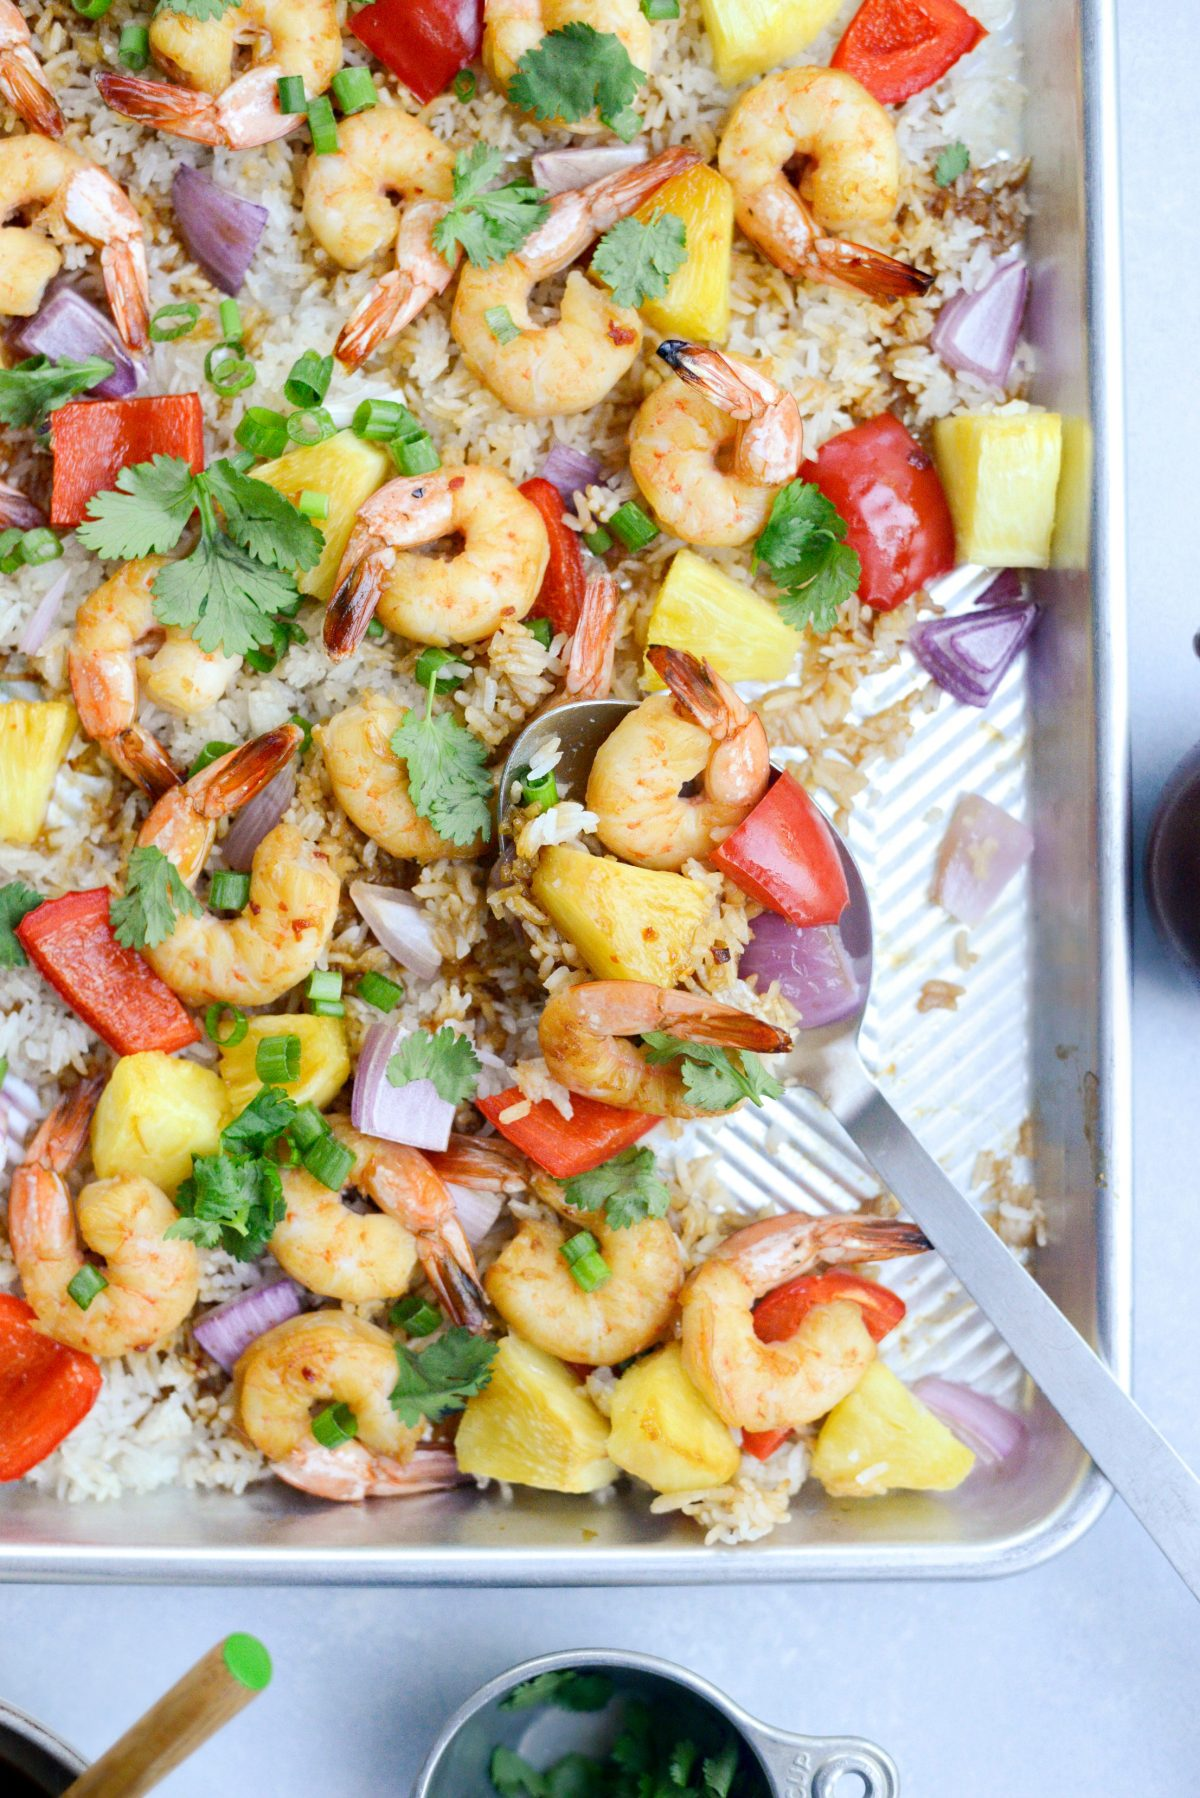 Sheet Pan Hawaiian Shrimp and Rice Dinner l SimplyScratch.com #sheetpan #shrimp #hawaiian #rice #easydinner